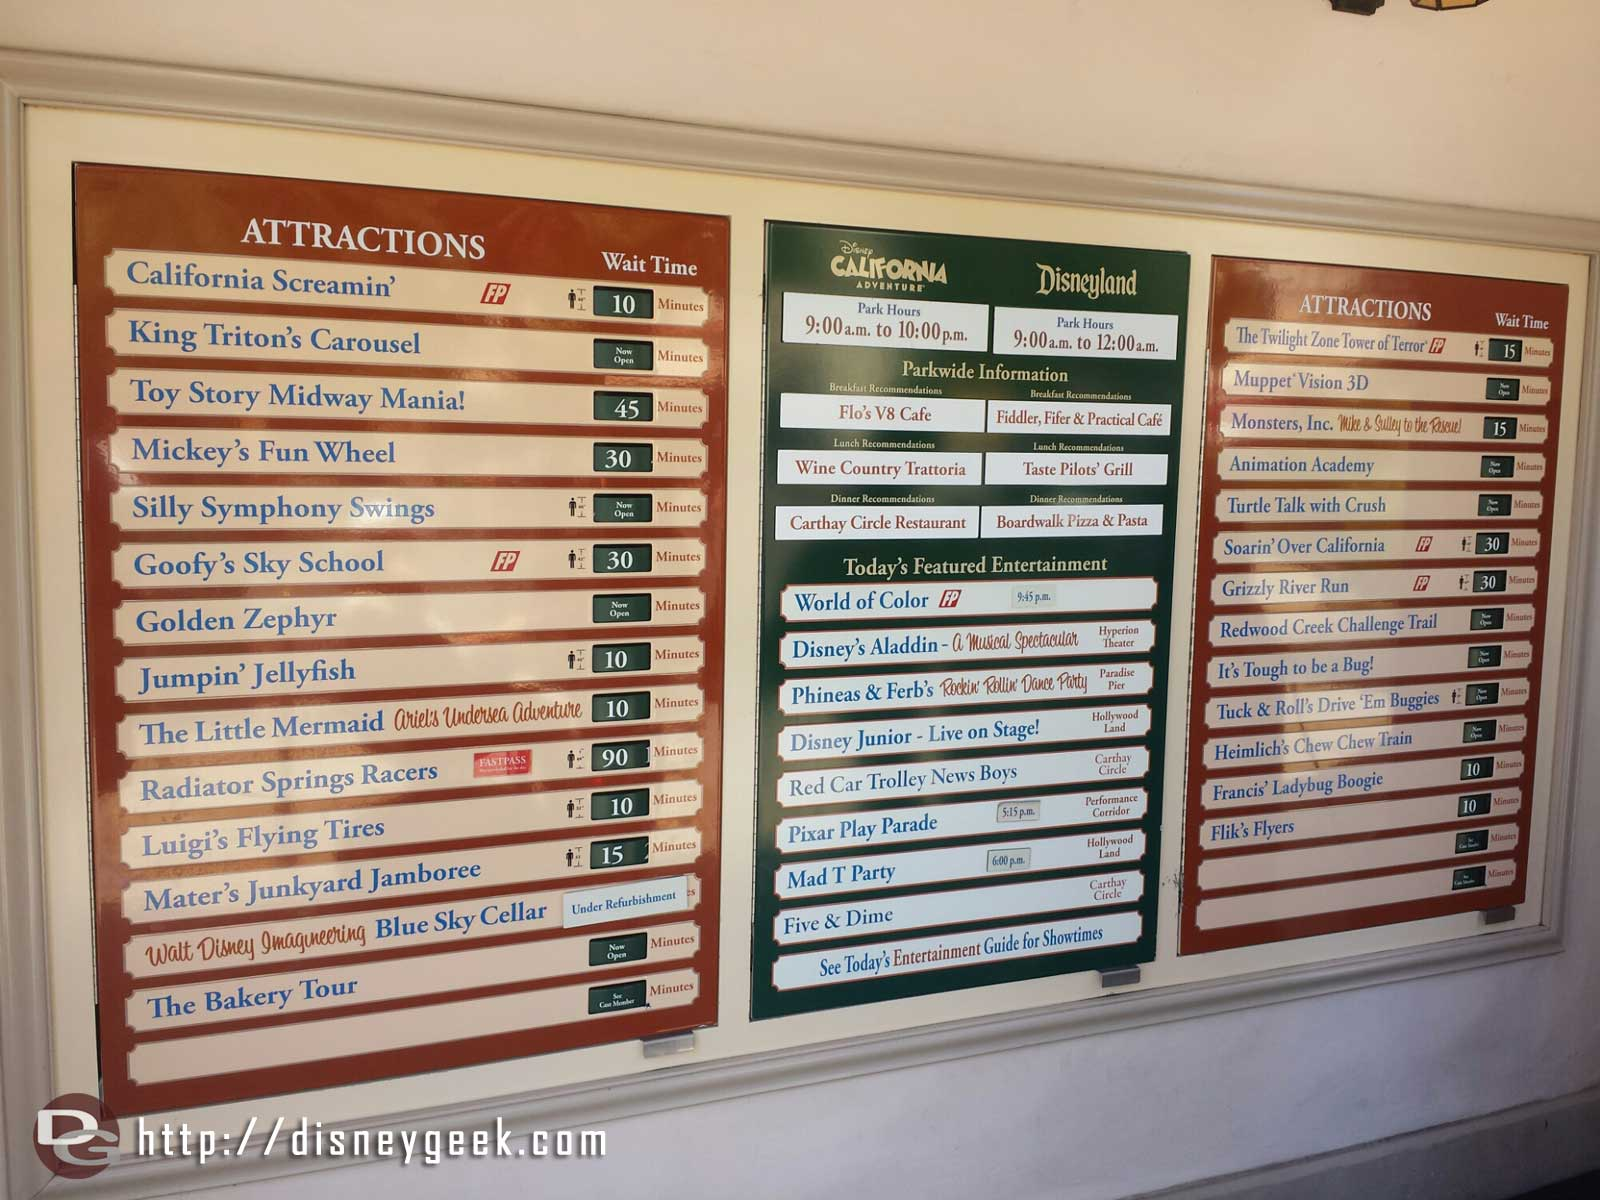 Disney California Adventure waits at 12:54pm